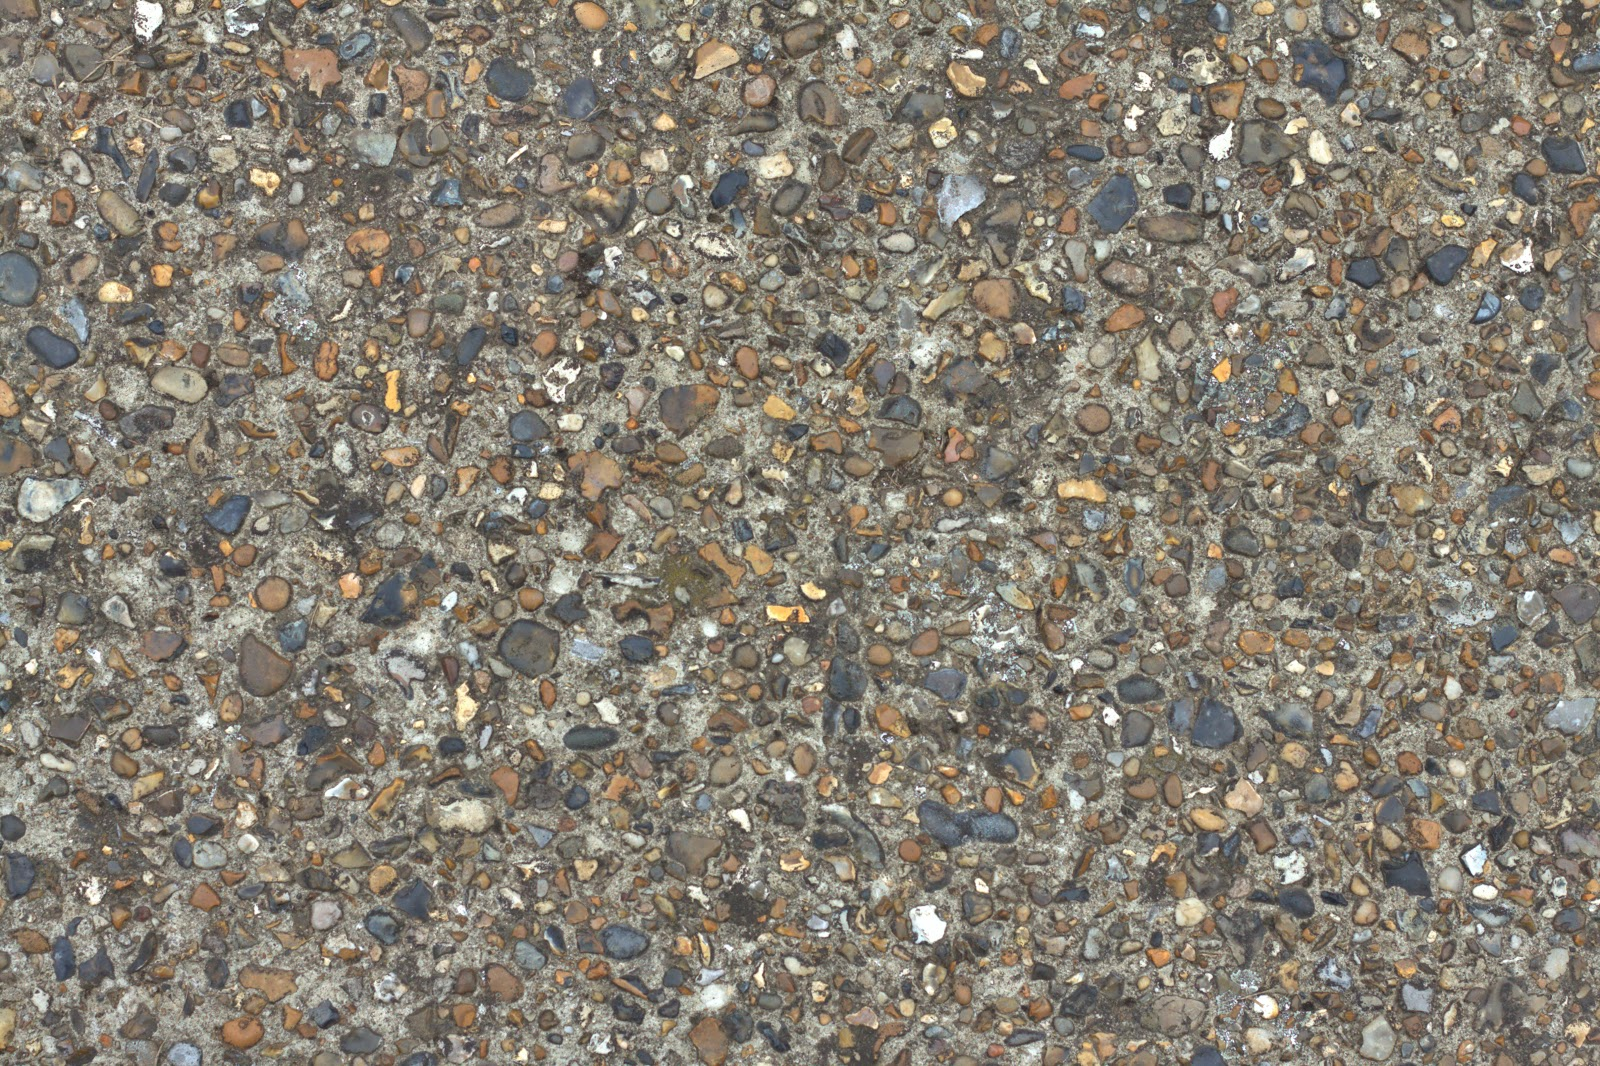 (Concrete cobble stone 5) pebble walkway texture 4770x3178